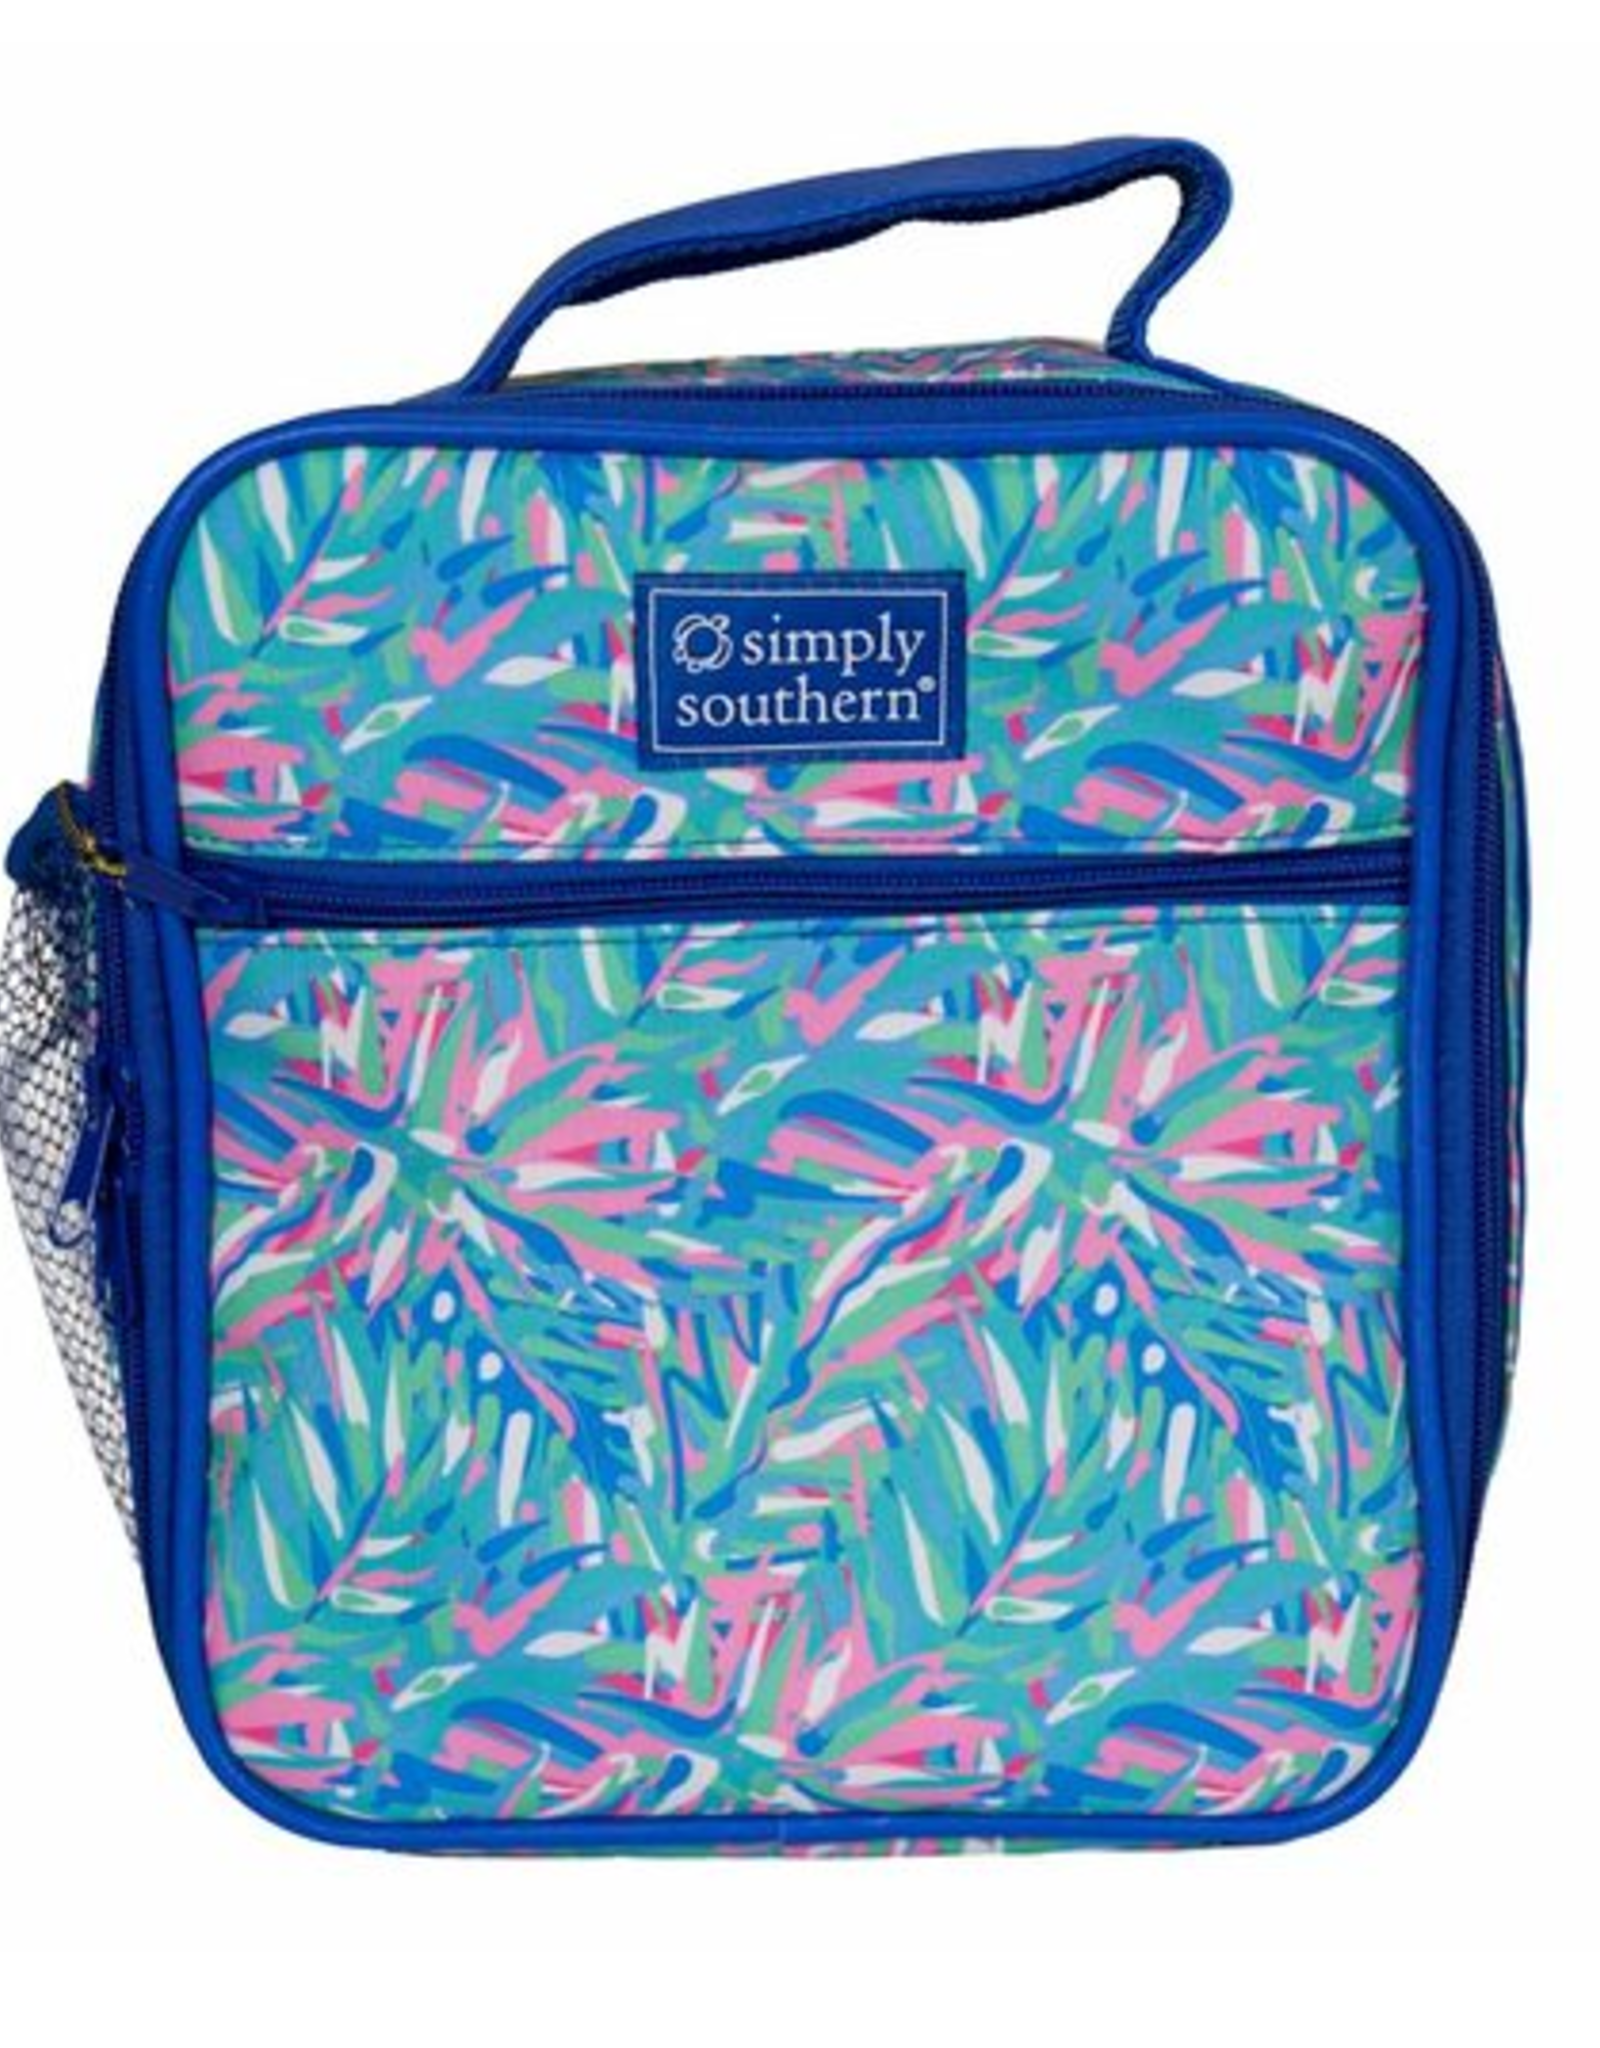 Simply Southern Simply Southern, Abstract Print Lunch Box